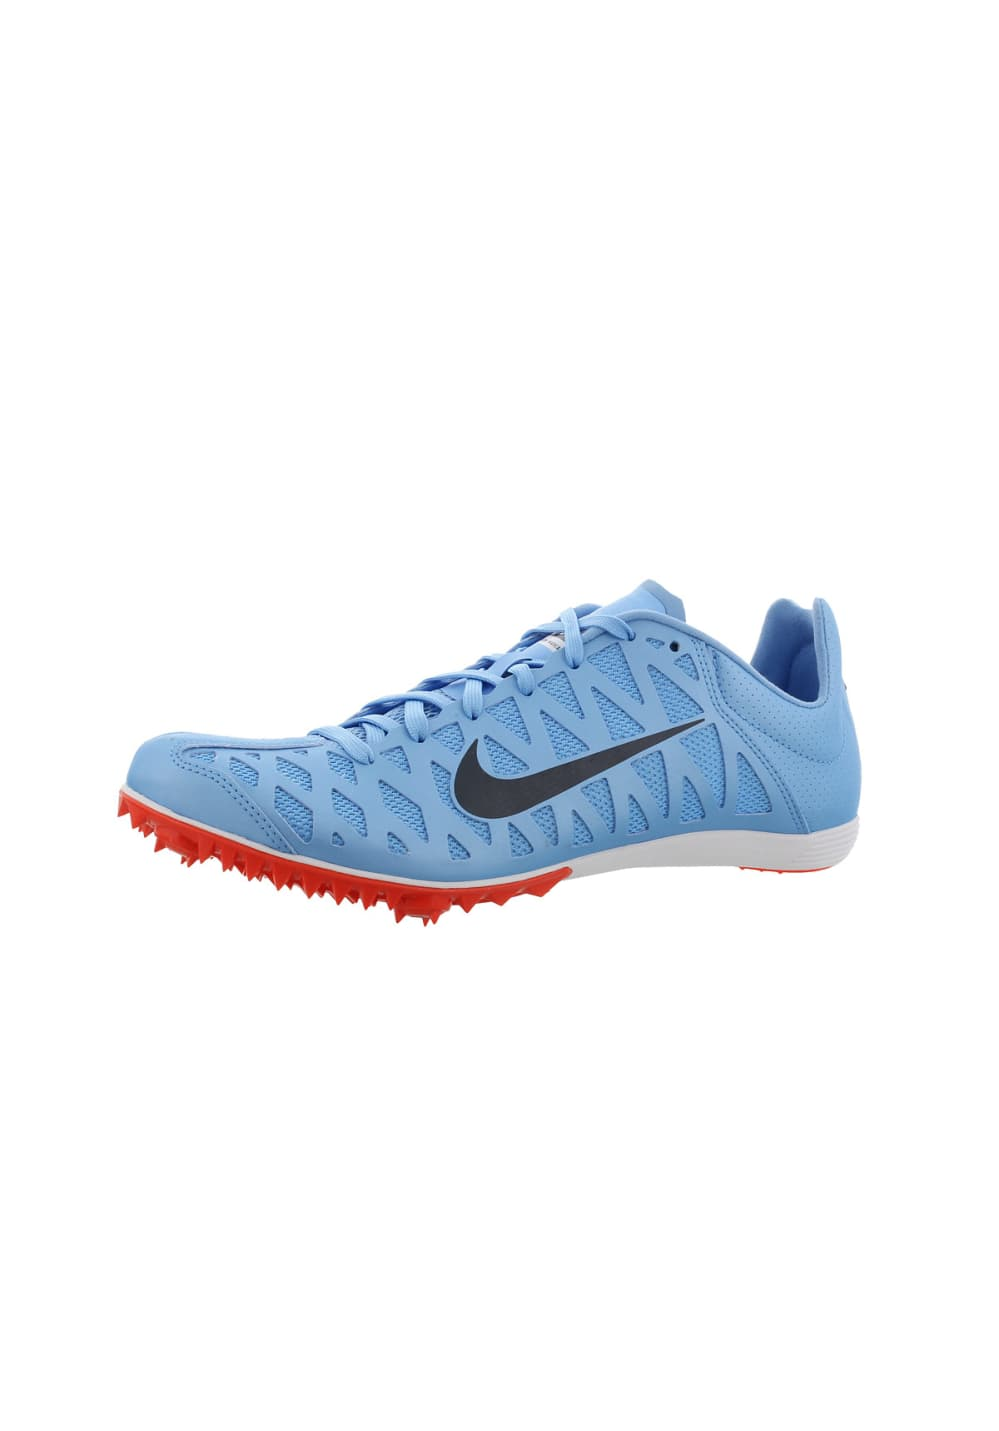 buy popular 185db ee086 Nike Zoom Maxcat 4 - Spikes for Men - Blue